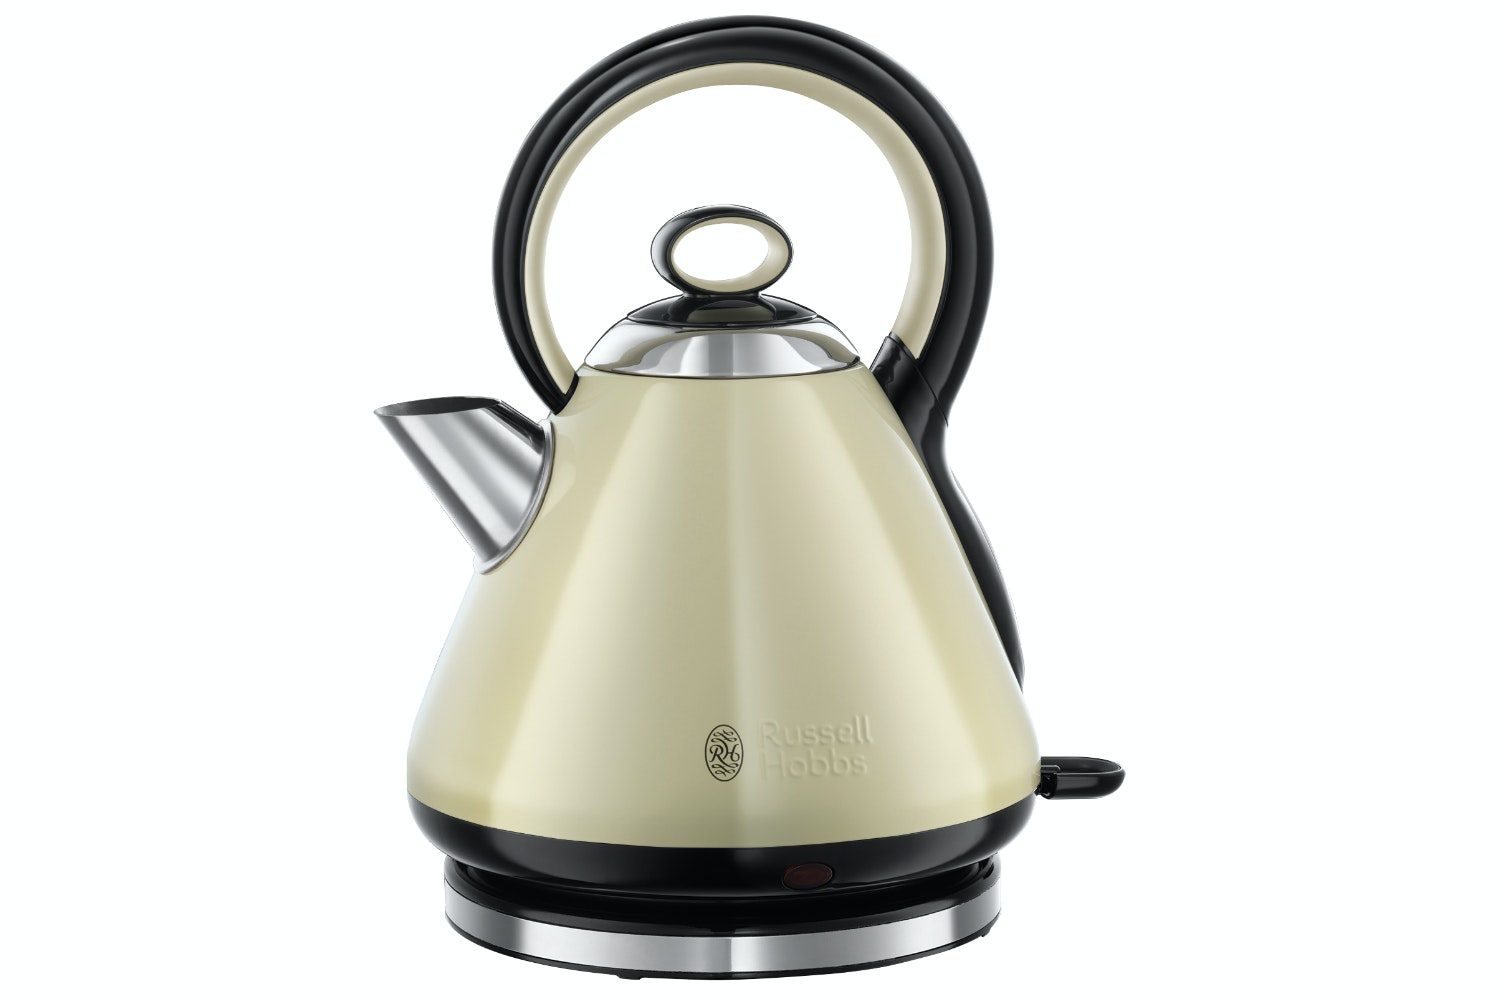 Russell Hobbs Legacy Collection Kettle 21882